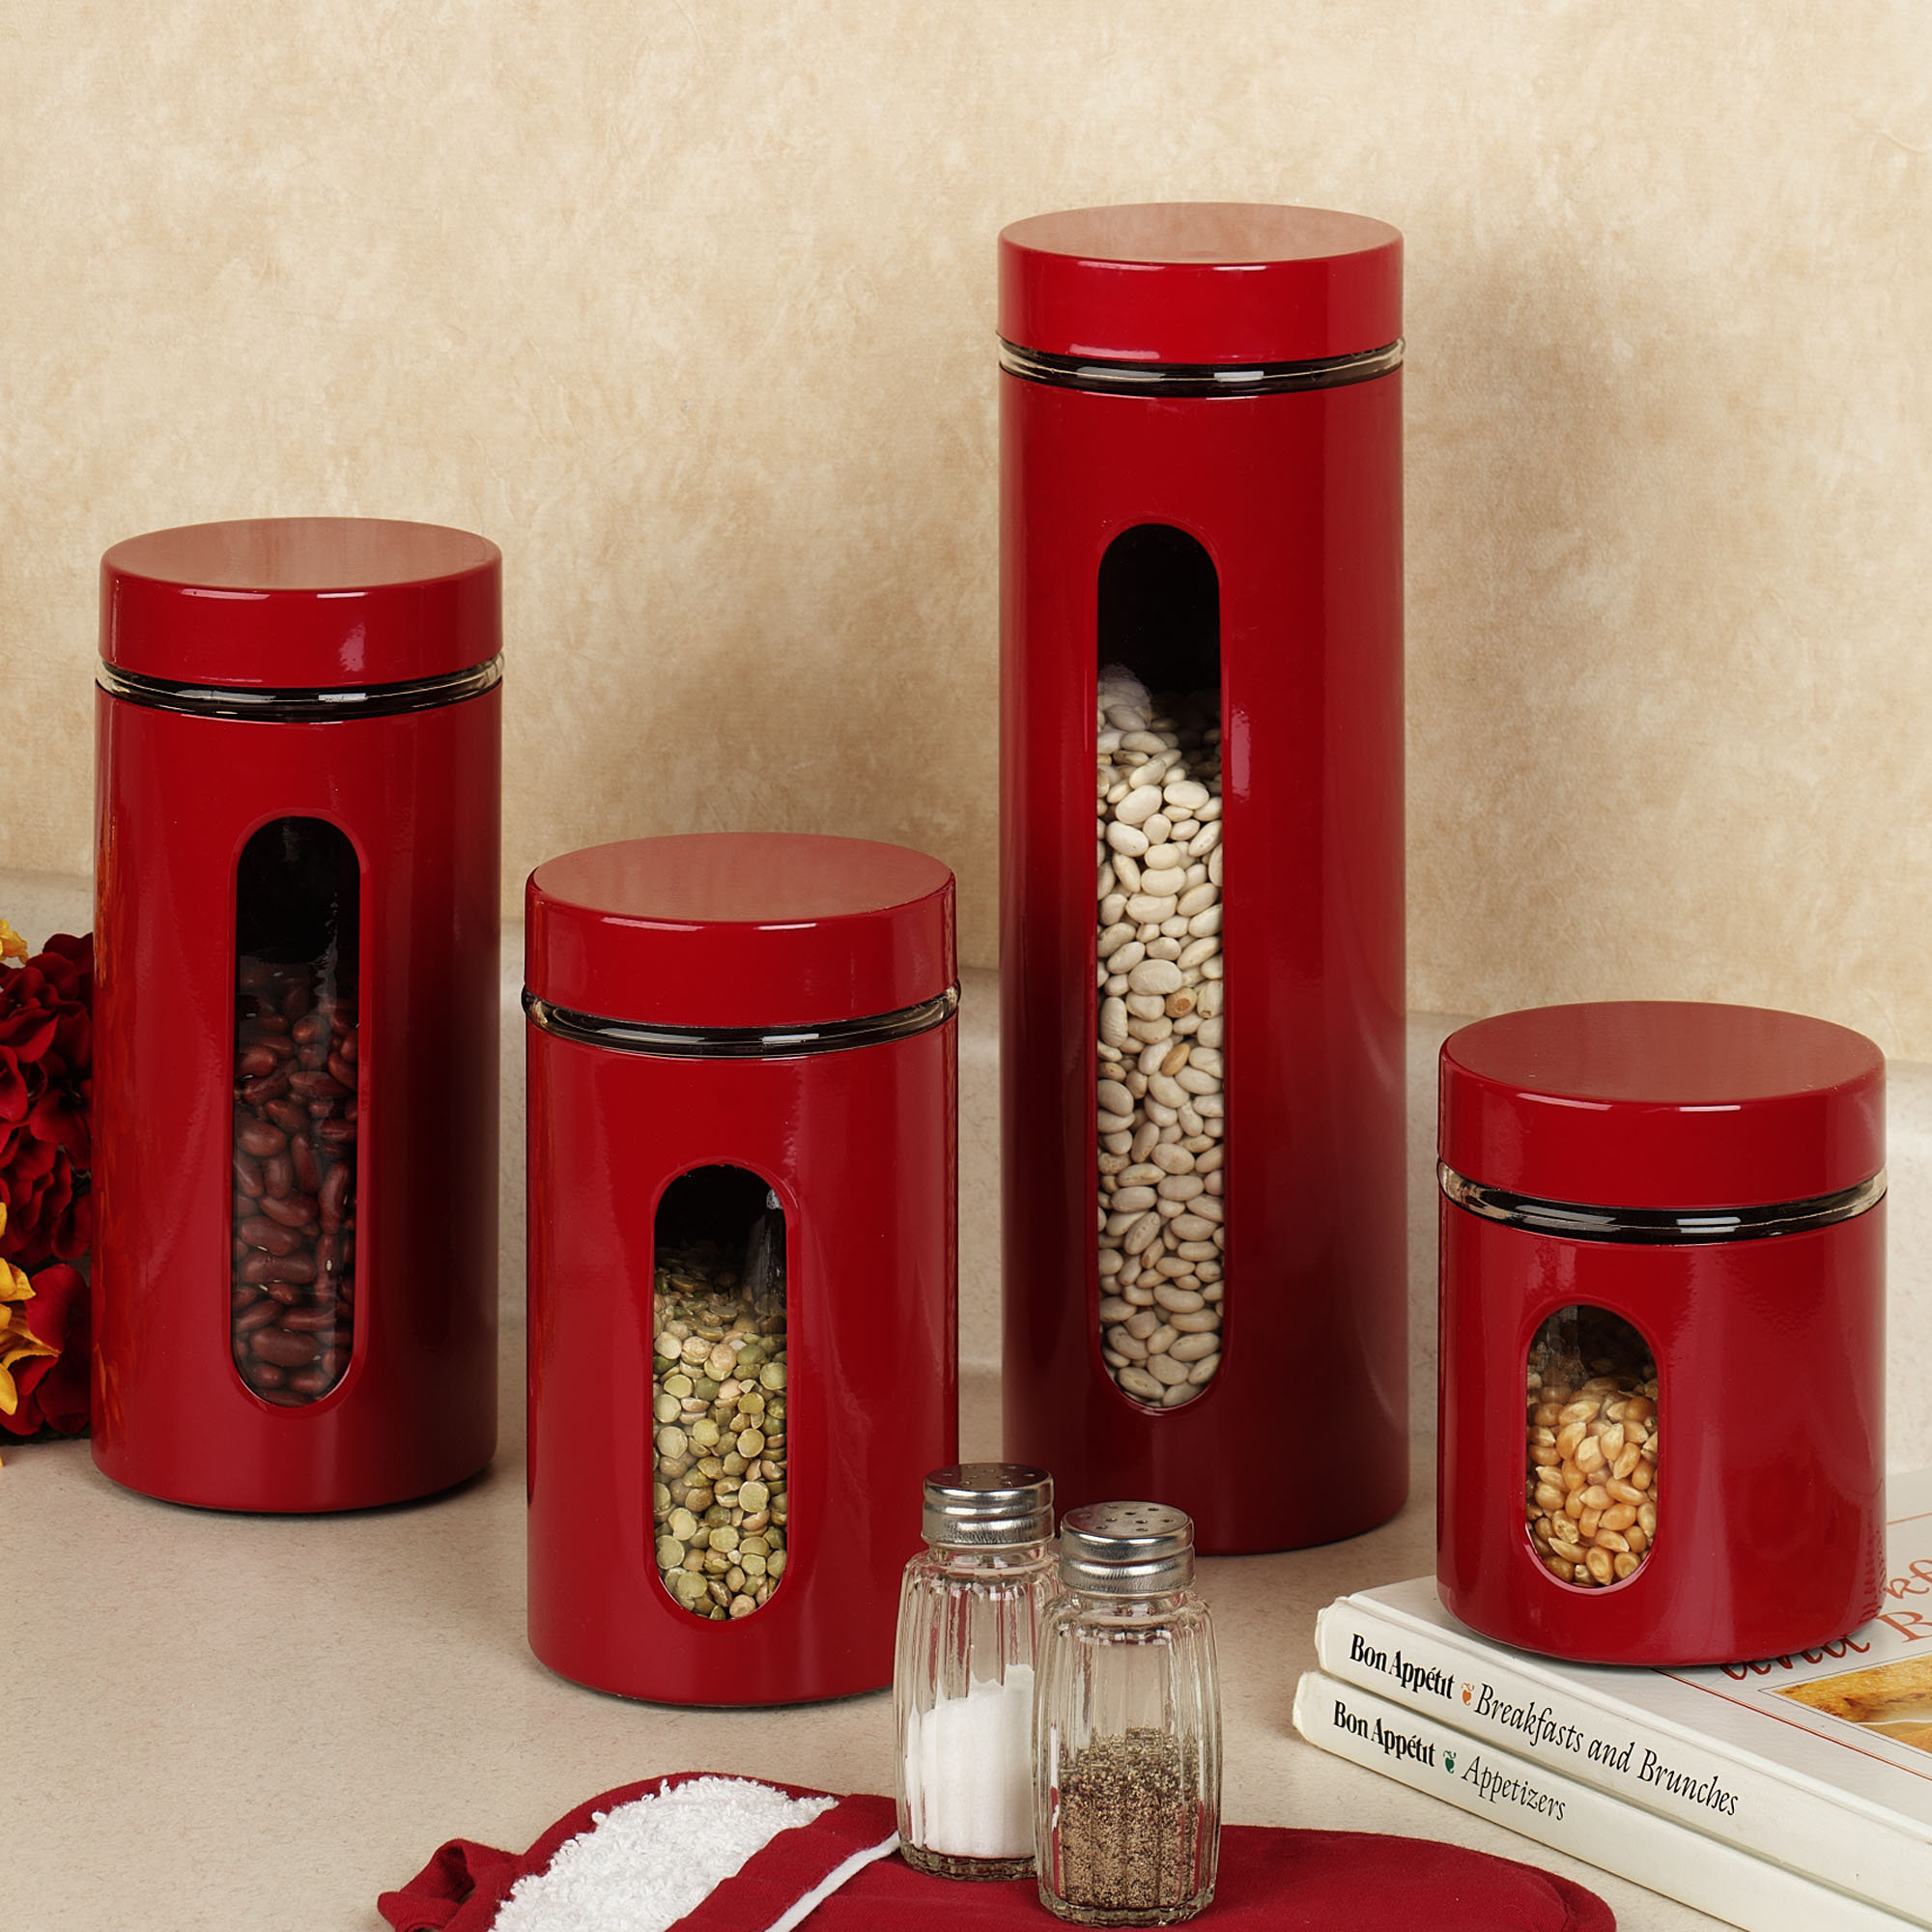 100 unique kitchen canisters sets 28 kitchen canisters unique kitchen canisters sets kitchen canister sets in red color homesfeed